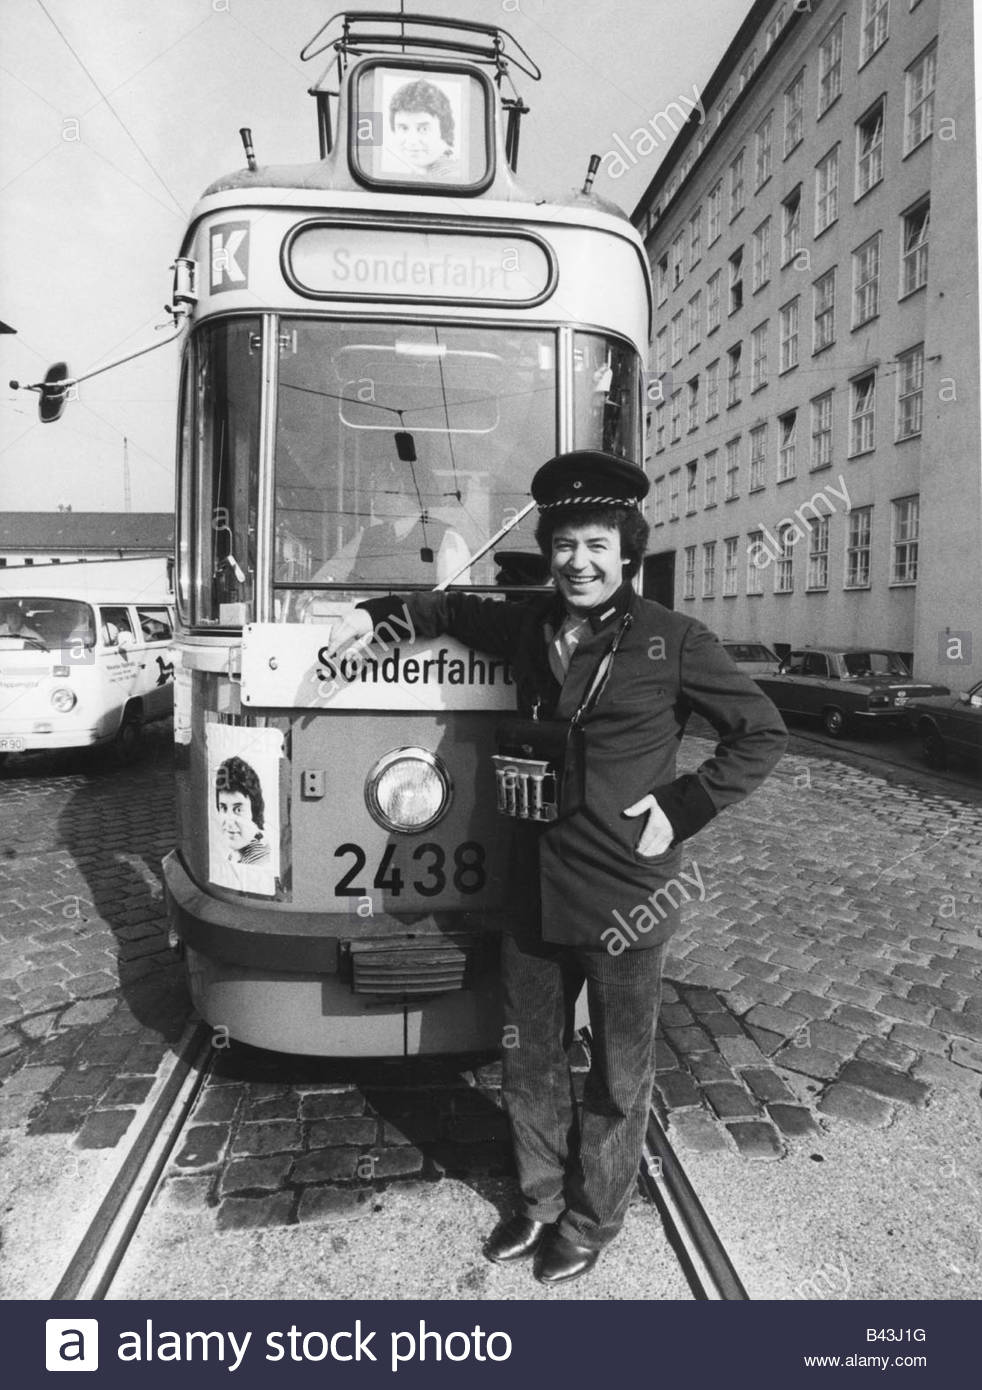 Marshall, Tony, (Herbert Anton Hilger), * 3.2.1938, German singer, full length, in front of a tramway, Munich, Germany, - Stock Image